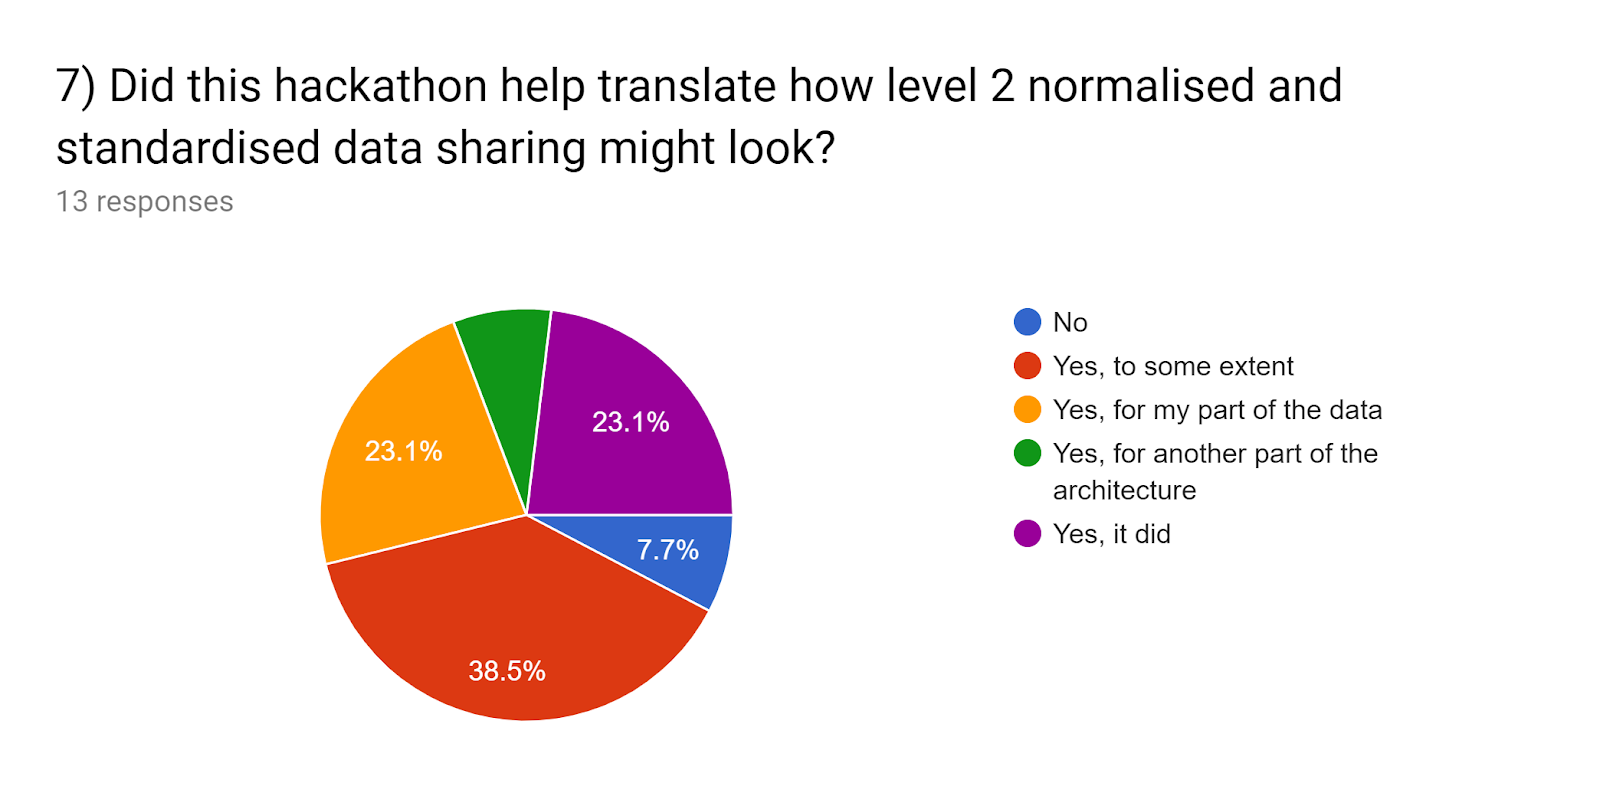 Forms response chart. Question title: 7) Did this hackathon help translate how level 2 normalised and standardised data sharing might look?. Number of responses: 13 responses.